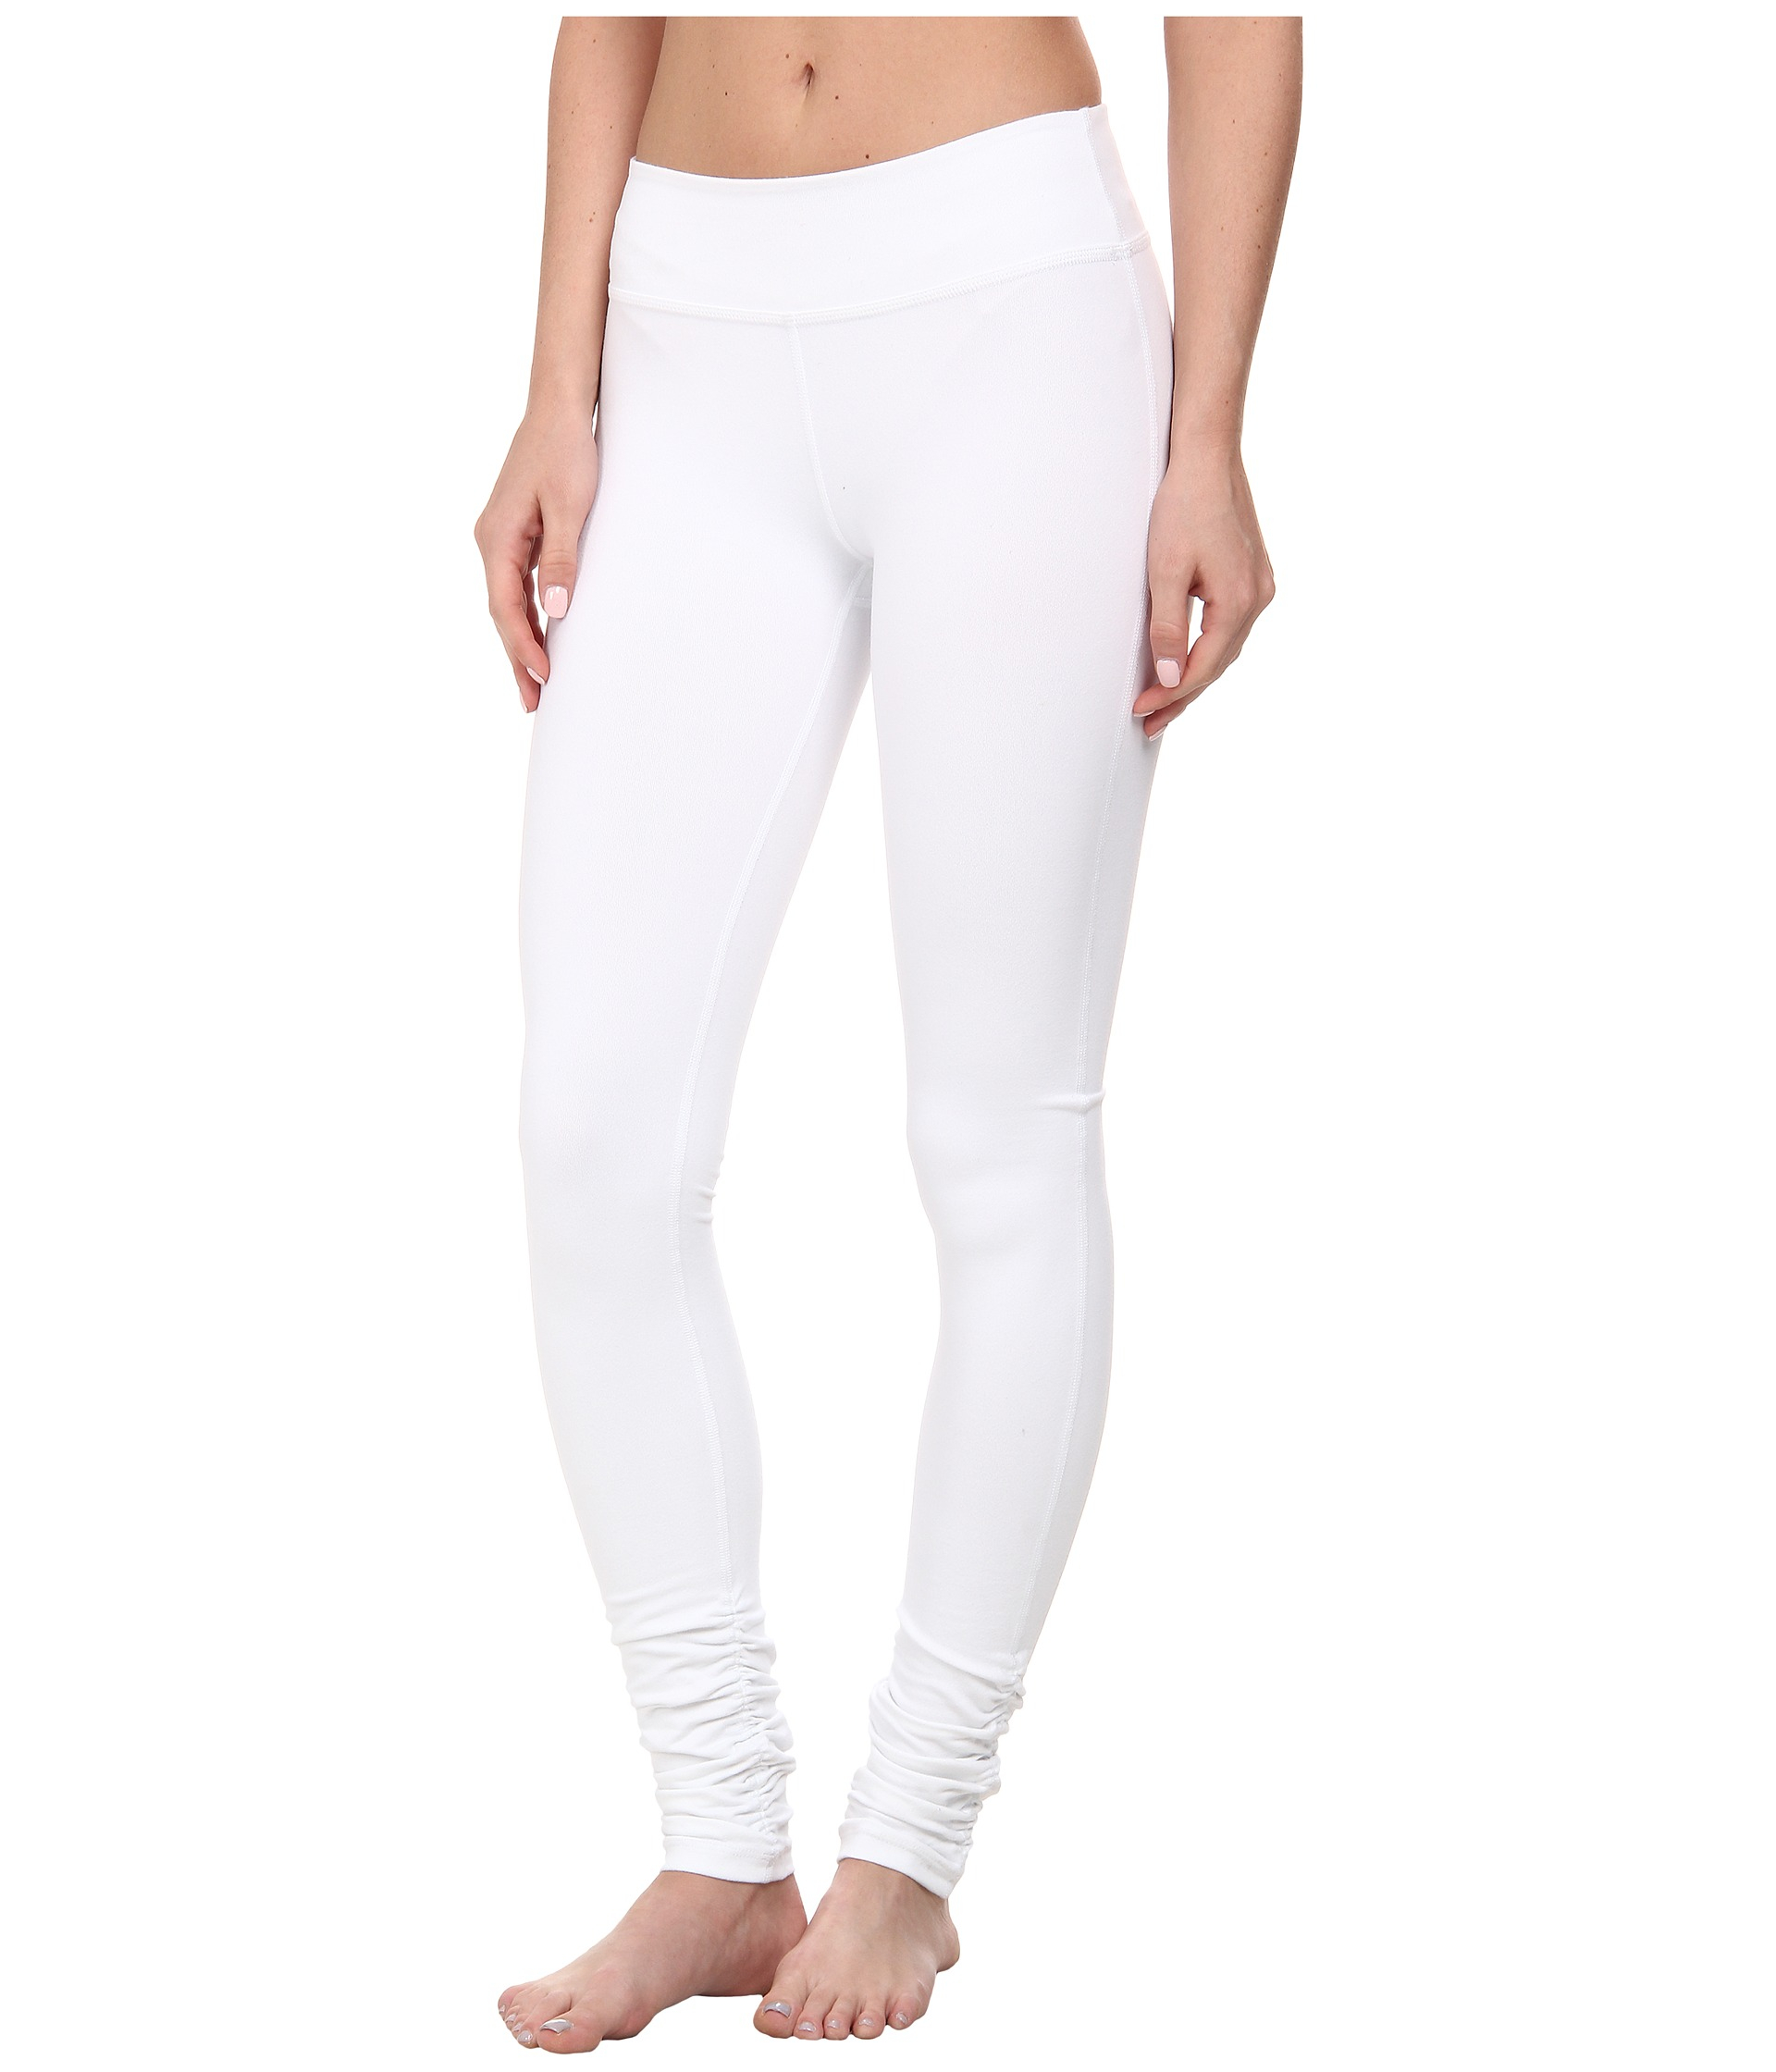 Find great deals on eBay for white leggings long. Shop with confidence.